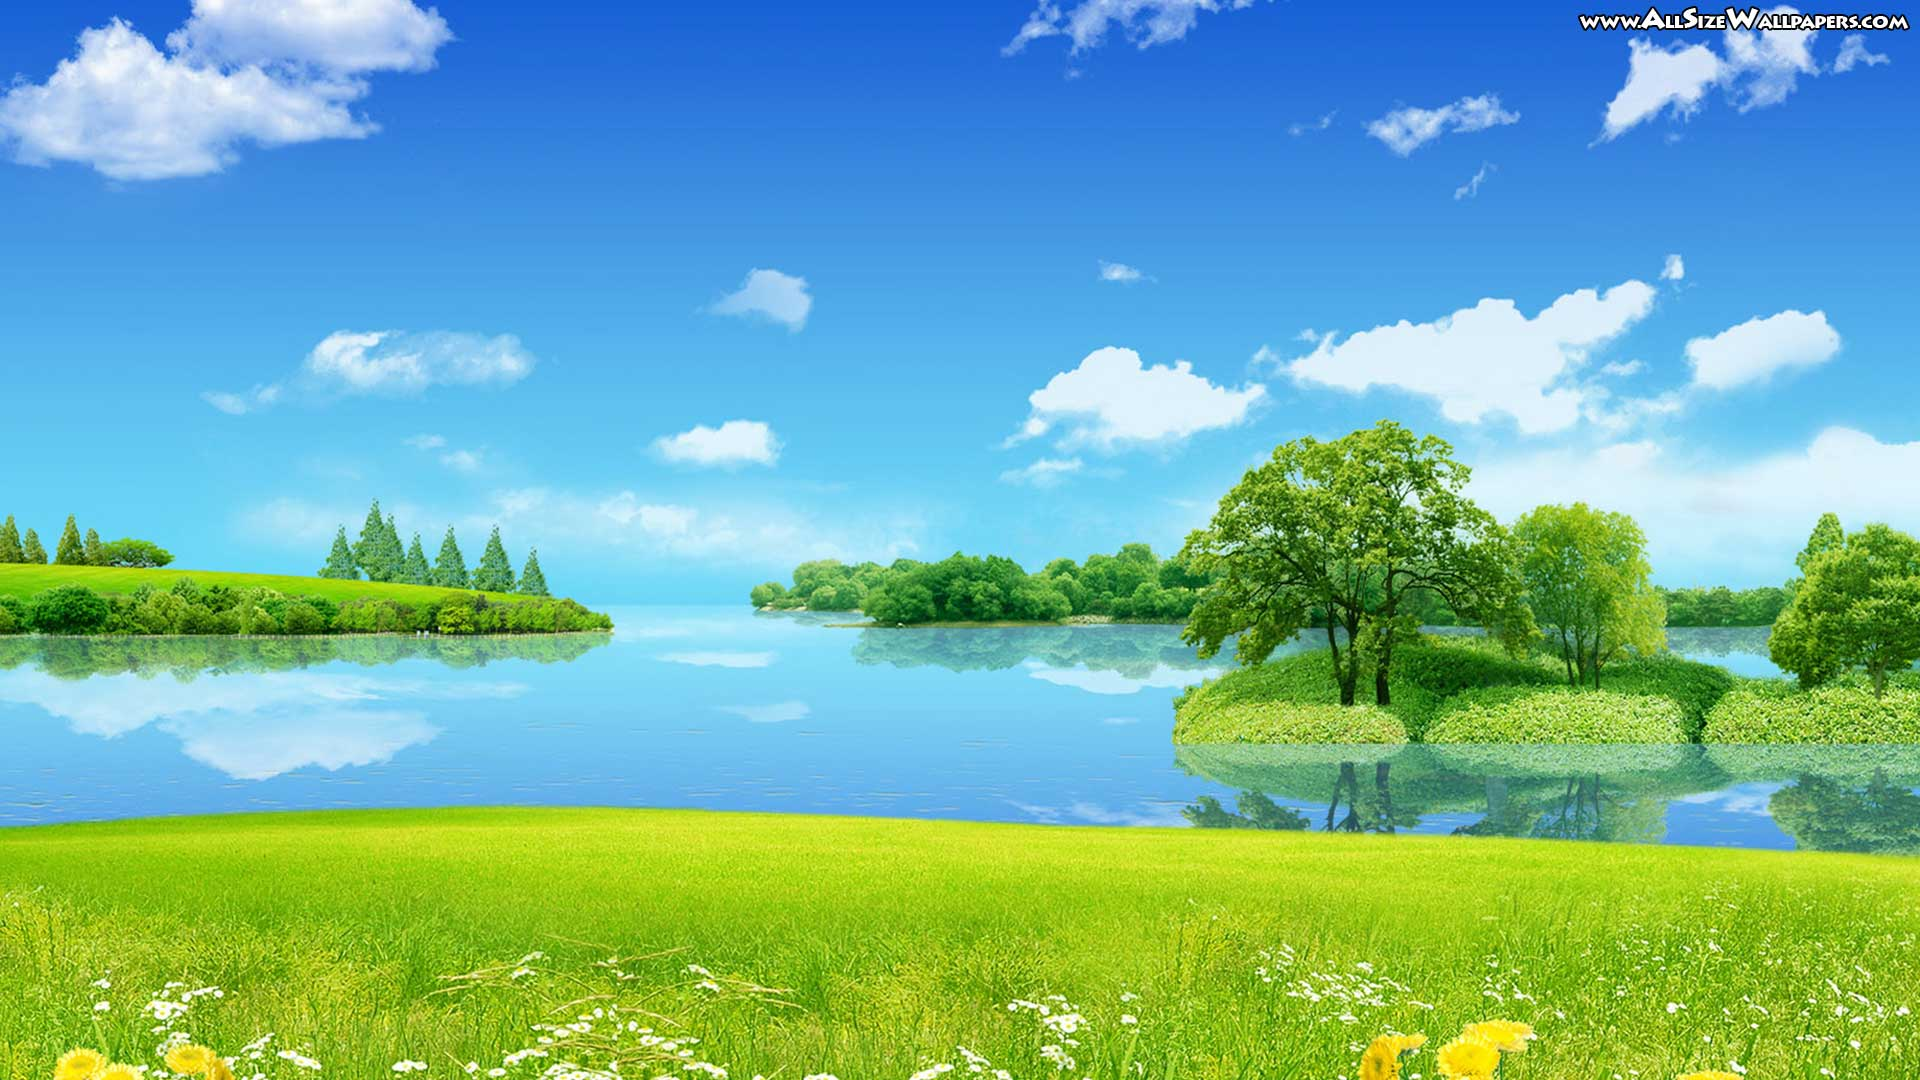 Free Nature Background 1920x1080 3283 Full HD Wallpaper Desktop .